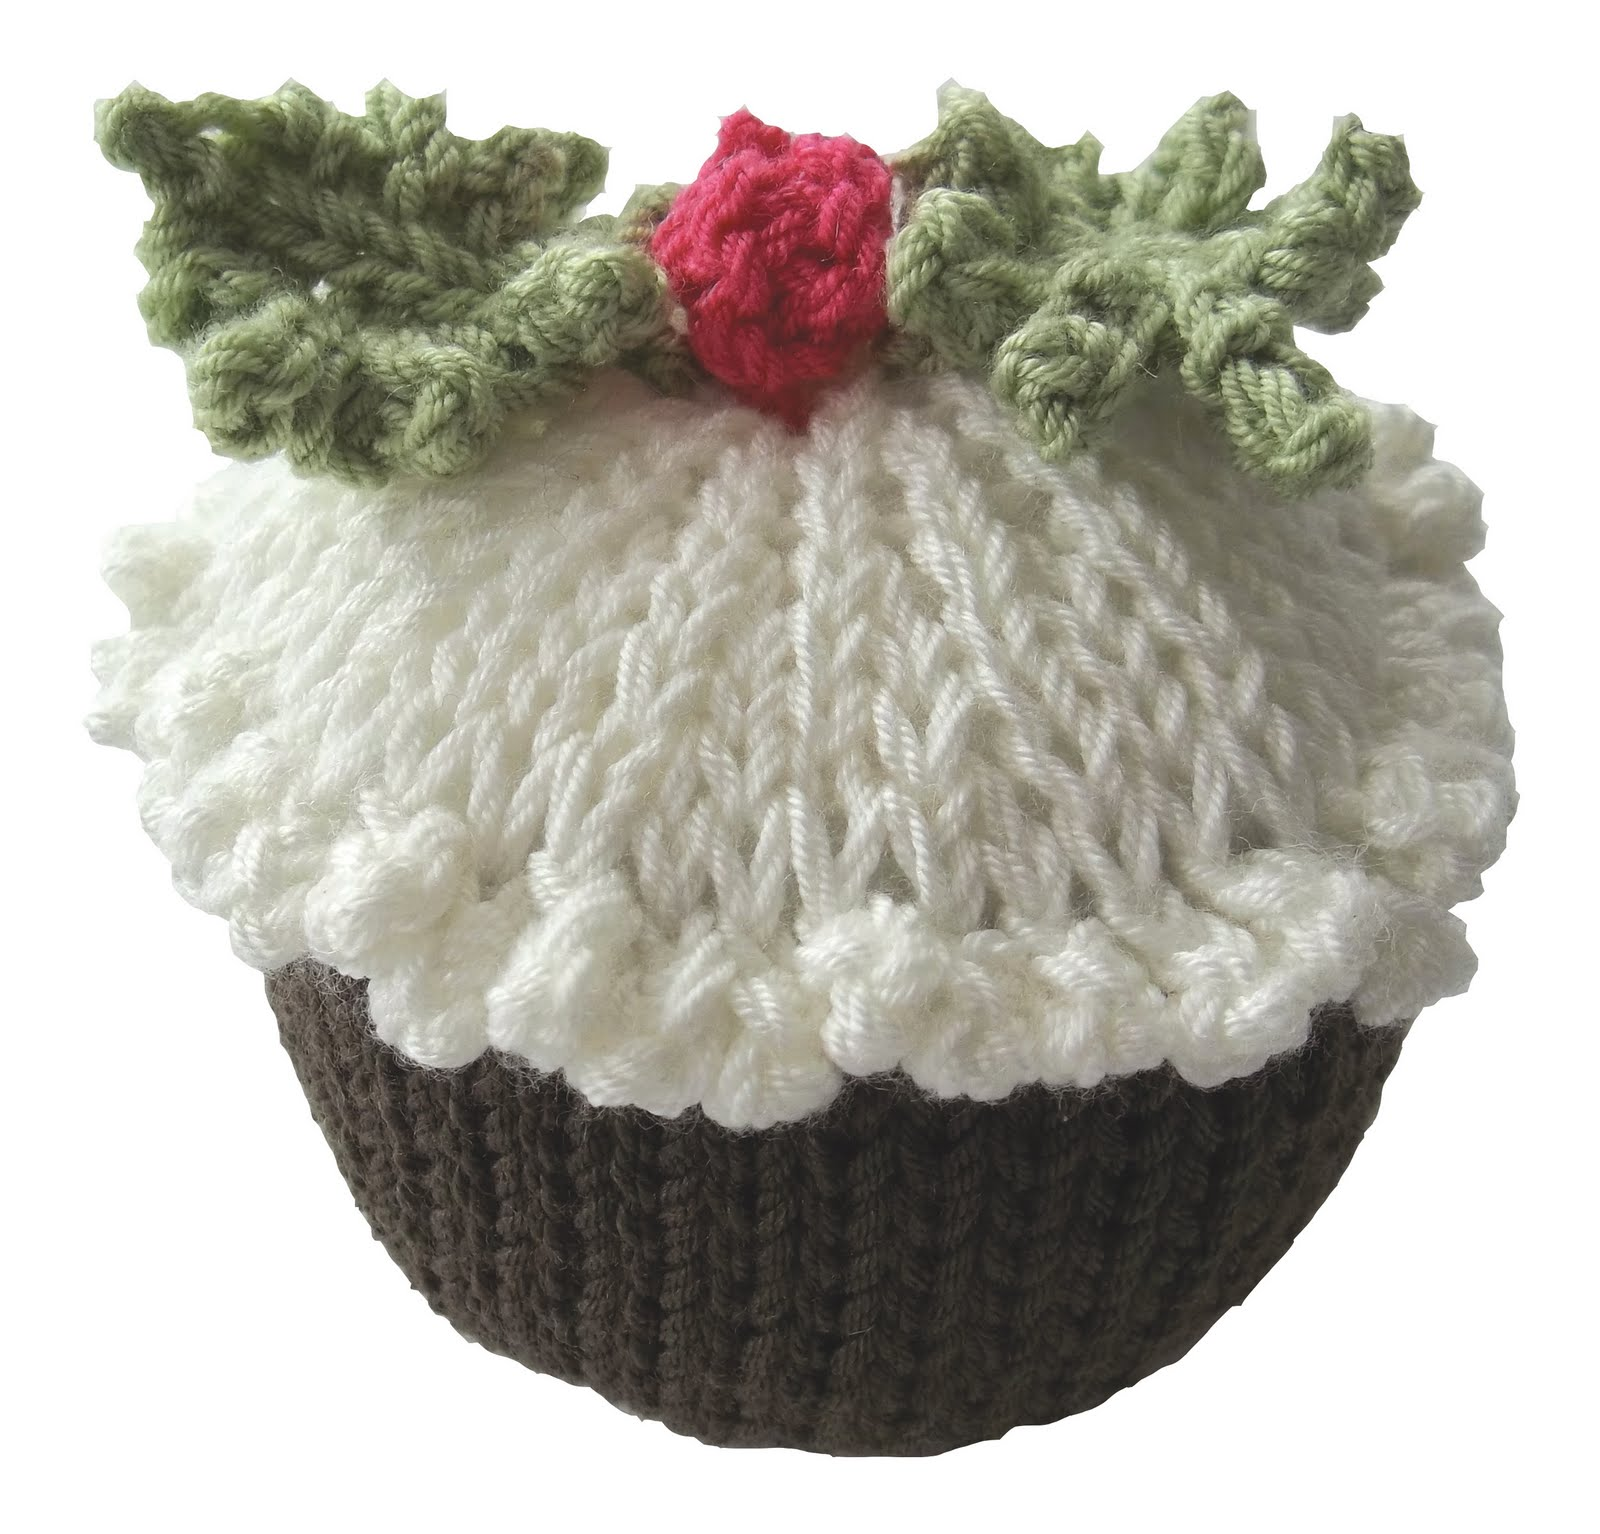 Free Knitting Pattern Xmas Pudding : Christmas Pudding Tea Cosy and Pin Cushion Knitting Pattern